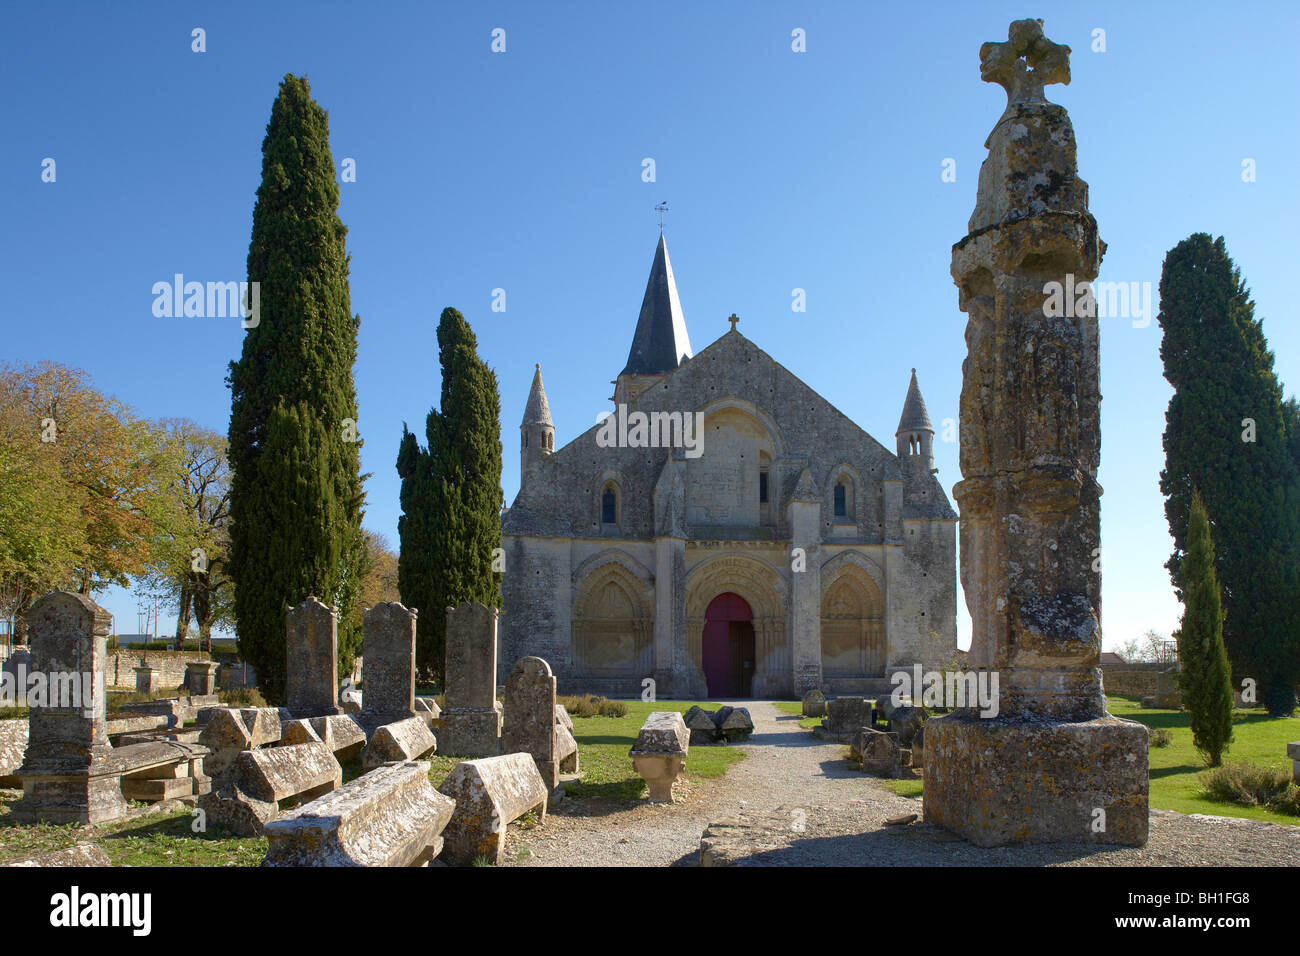 St Peter Church in Aulnay, West facade with Hosanna Cross, The Way of St. James, Chemins de Saint Jacques, Via Turonensis, - Stock Image